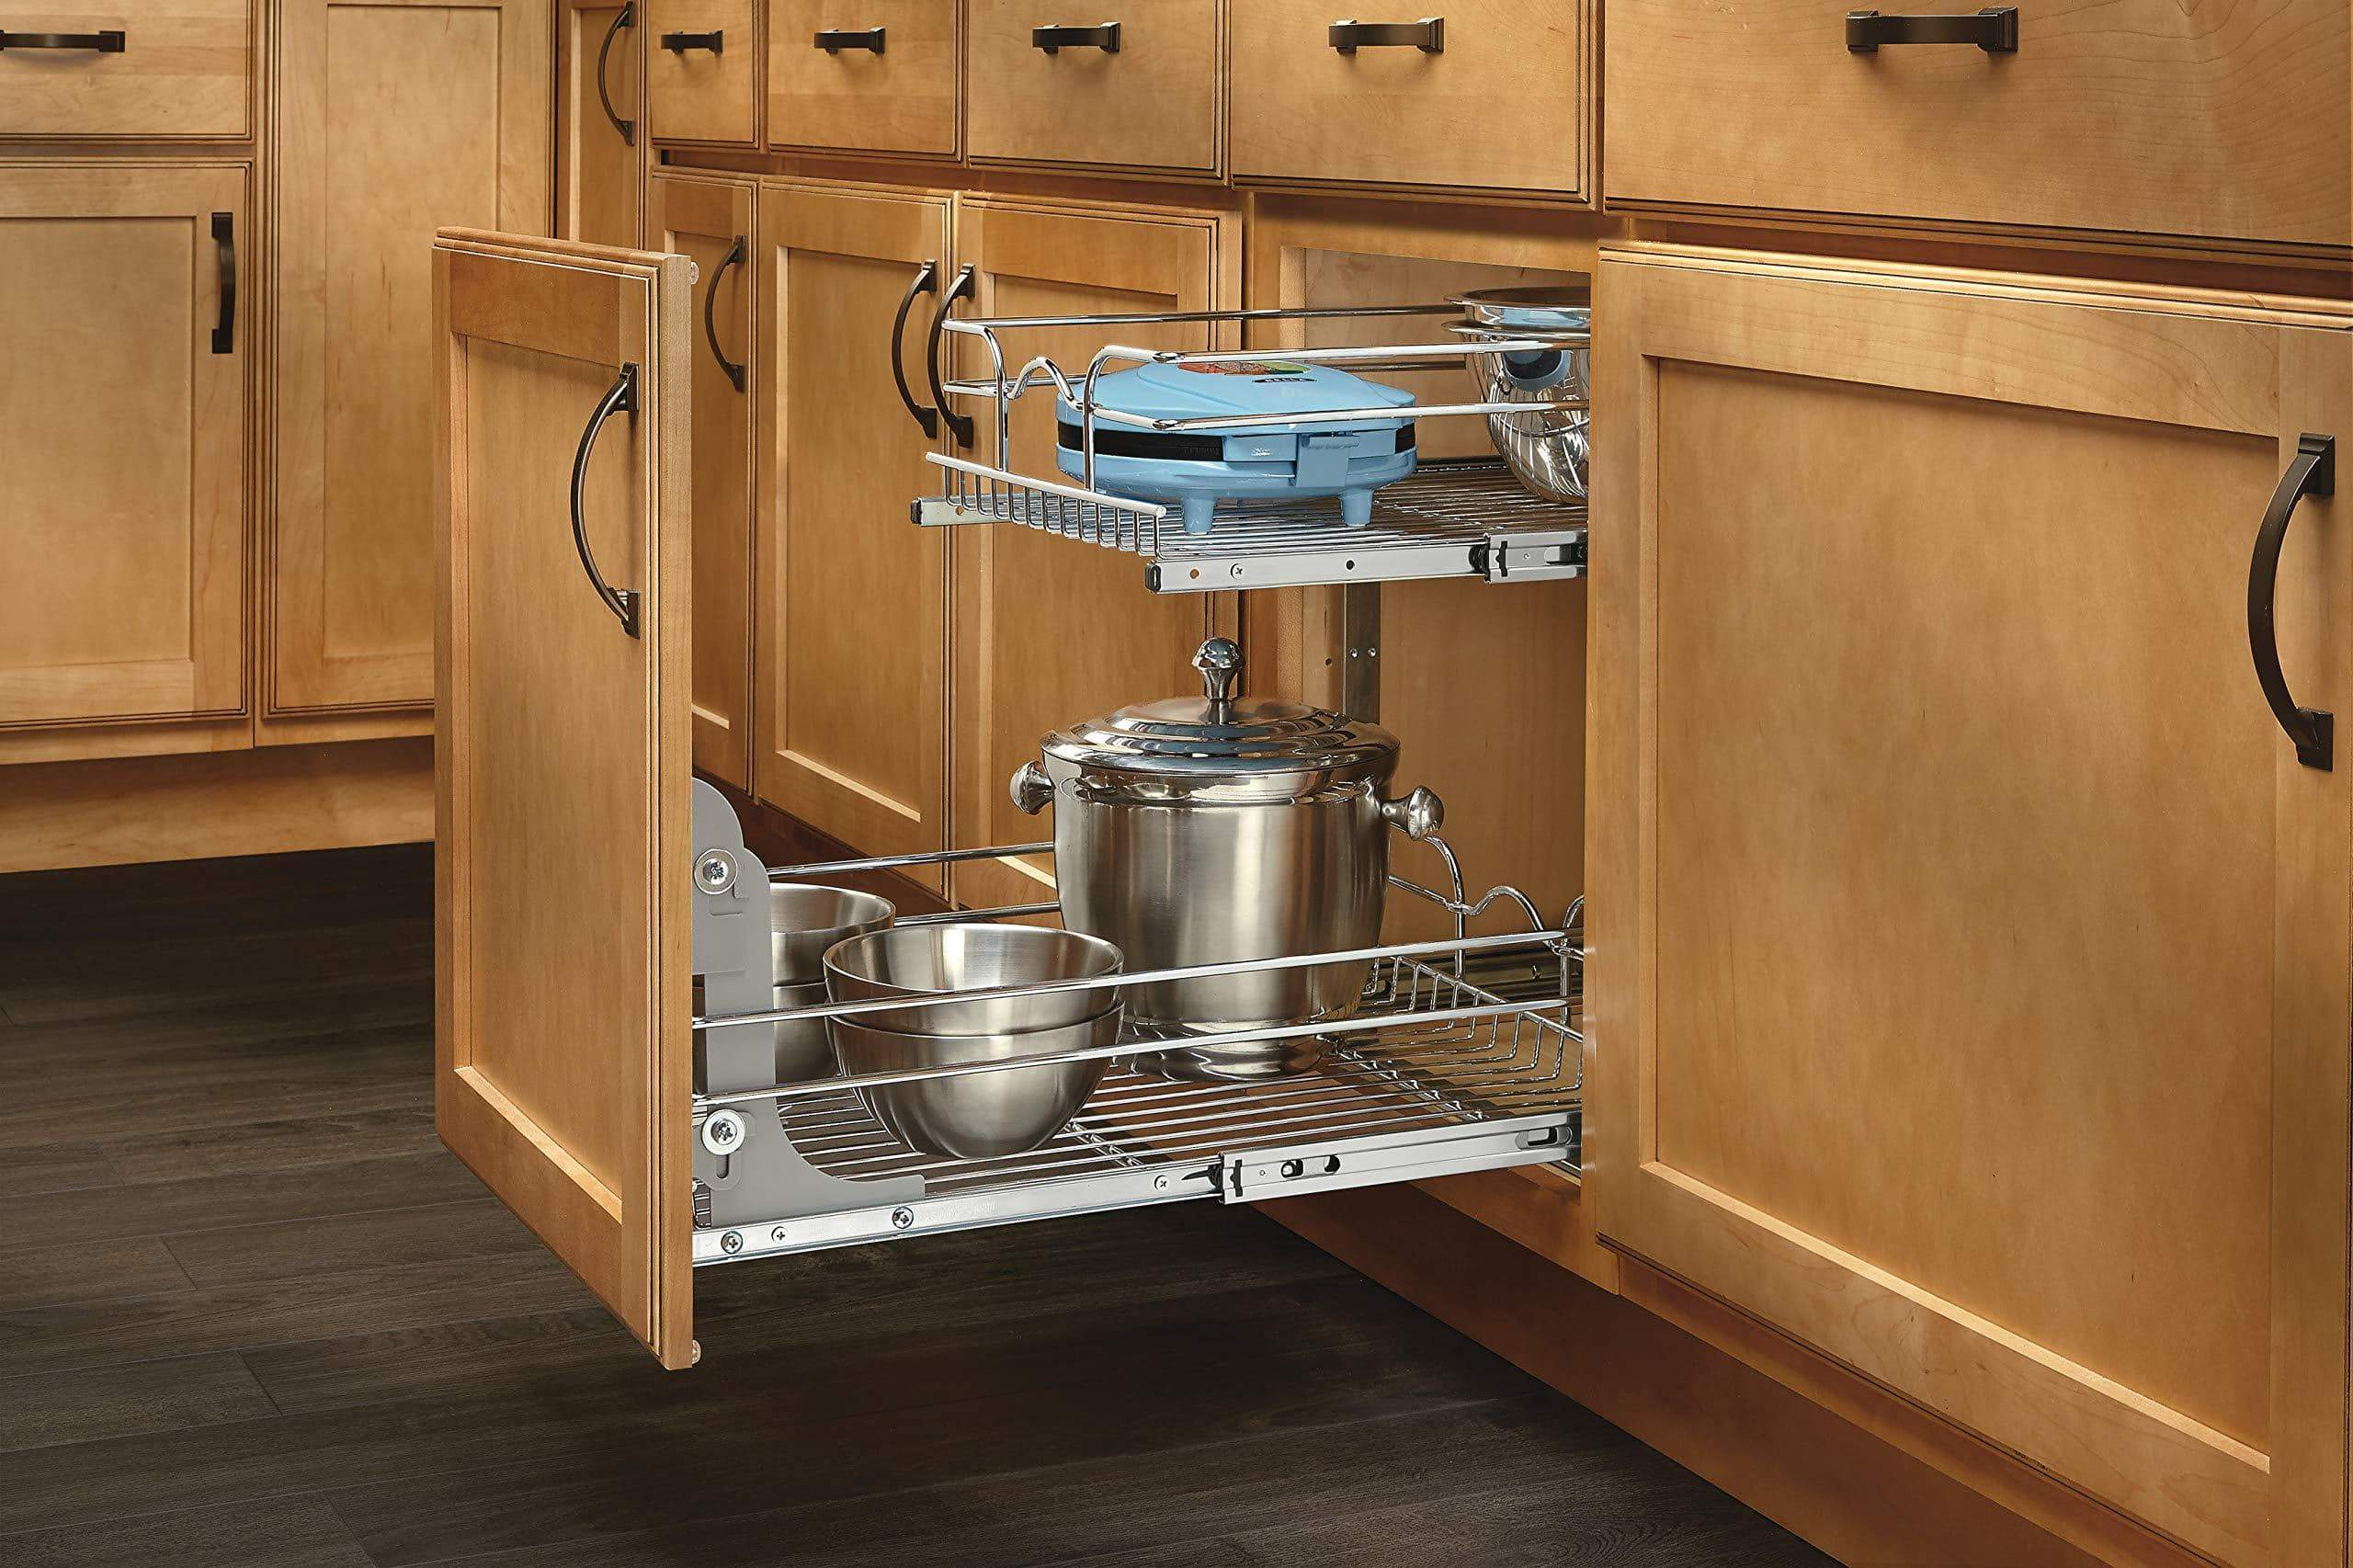 Shop here rev a shelf 5wb2 1218 cr 12 in w x 18 in d base cabinet pull out chrome 2 tier wire basket